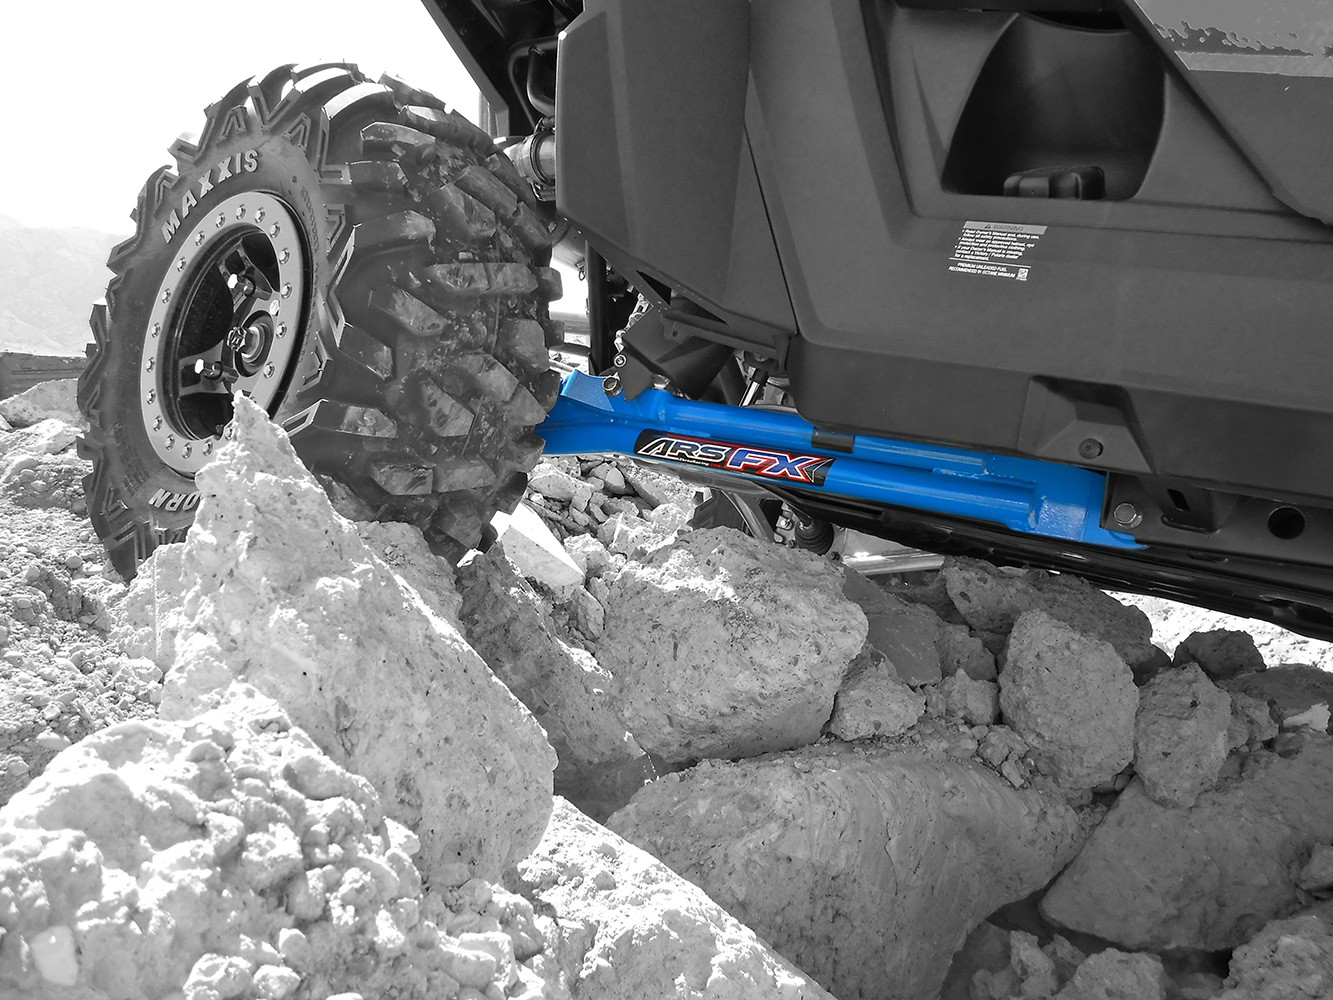 hight resolution of trailing arm kit for polaris rzr 900xp 900xp 4 max ground clearance